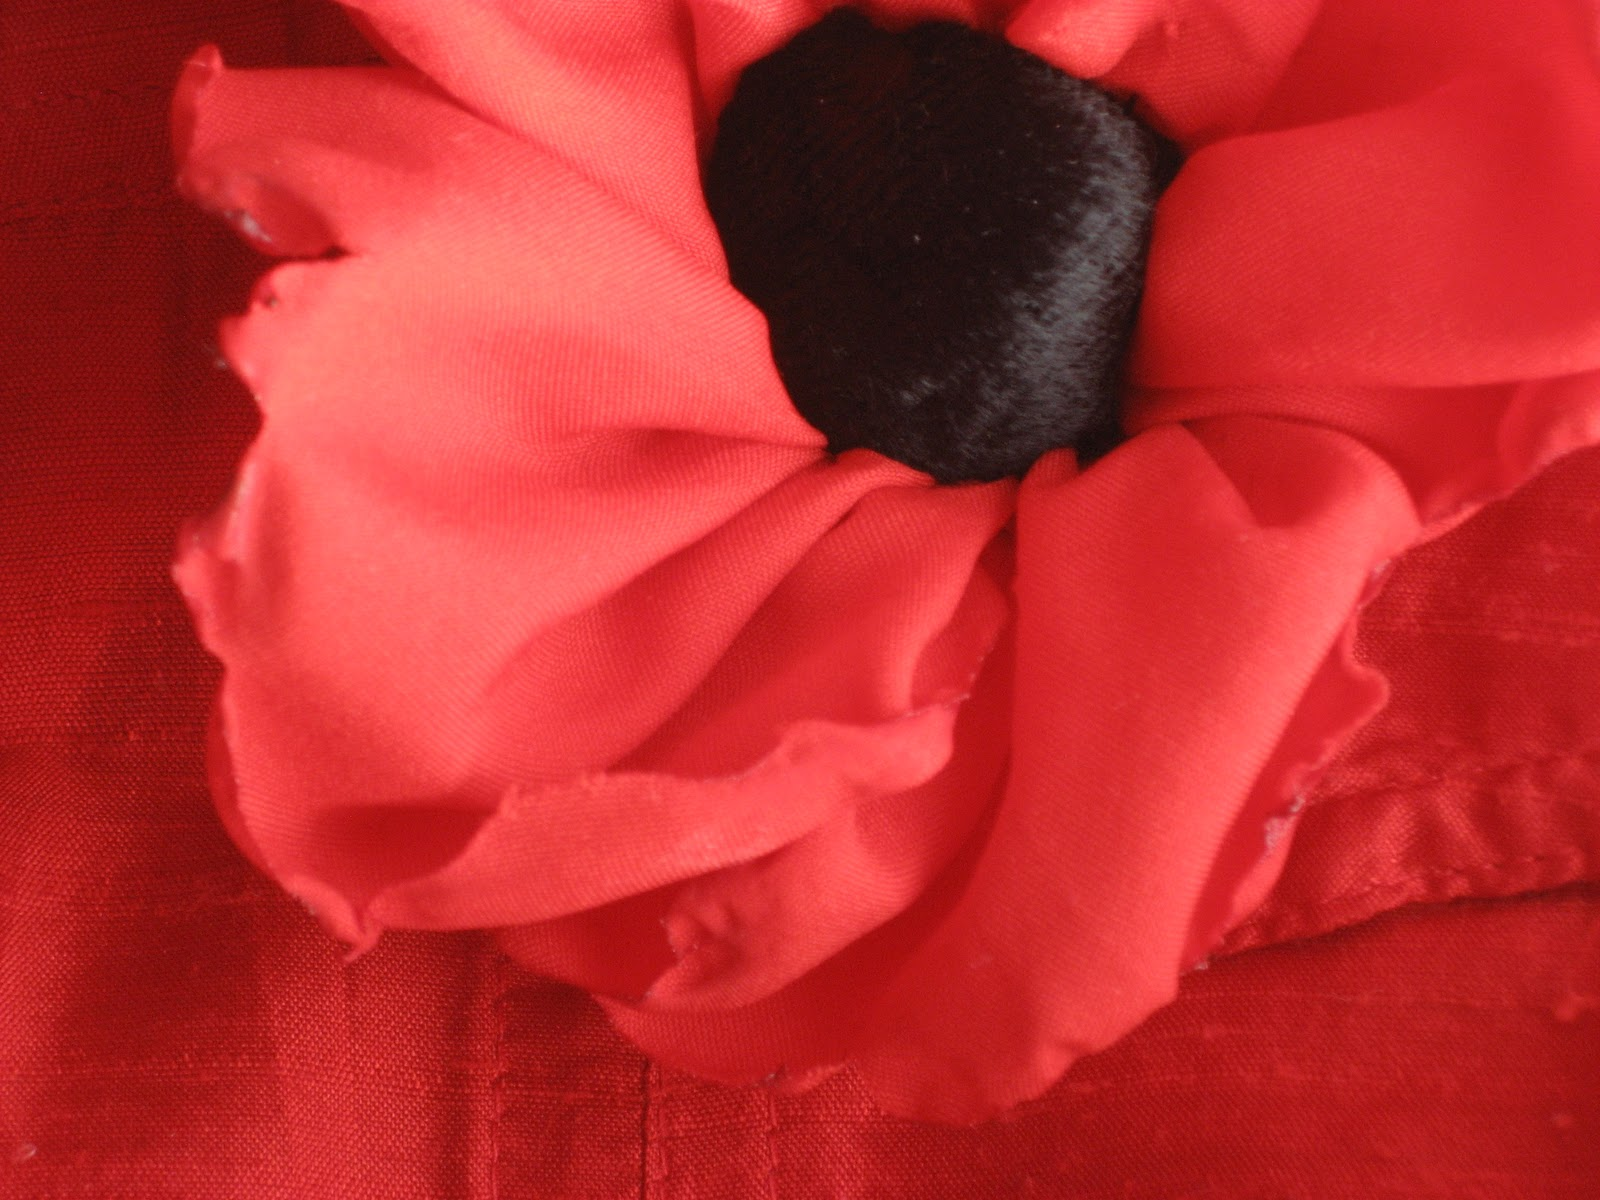 House revivals a poppy for remembrance a poppy for remembrance mightylinksfo